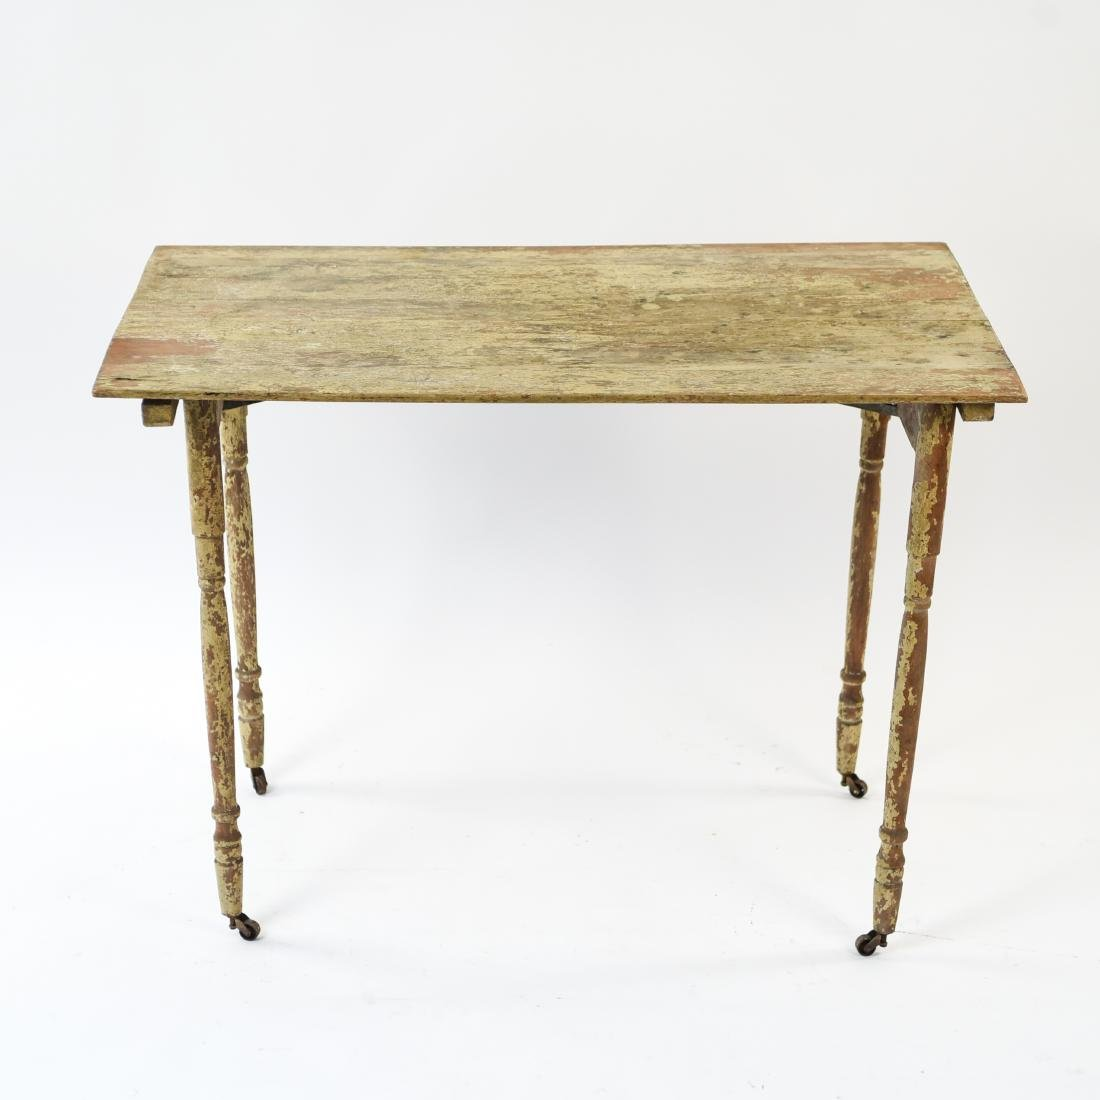 VINTAGE FOLDING TABLE W/ OLD PAINT